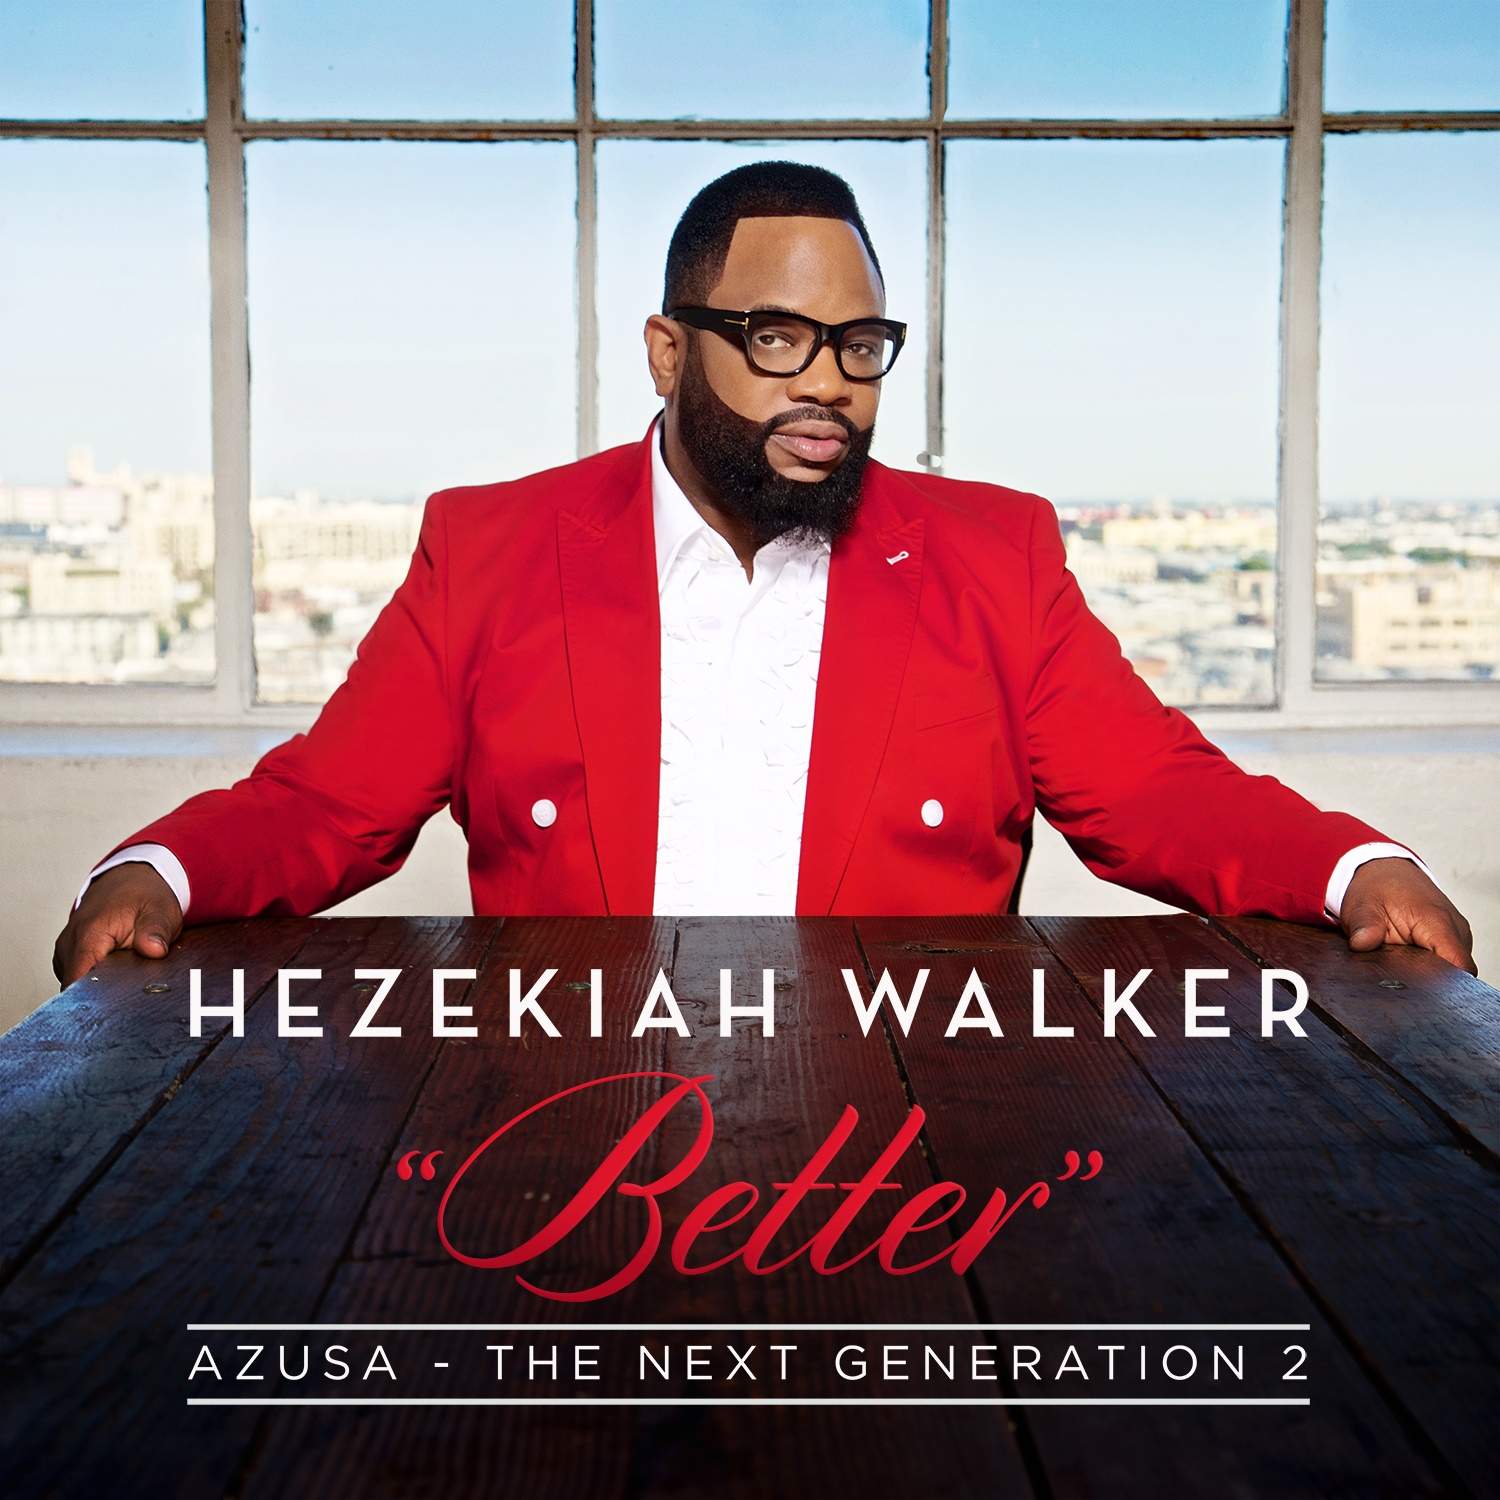 Hezekiah Walker Azusa The Next Generation 2-Better-Album Cover